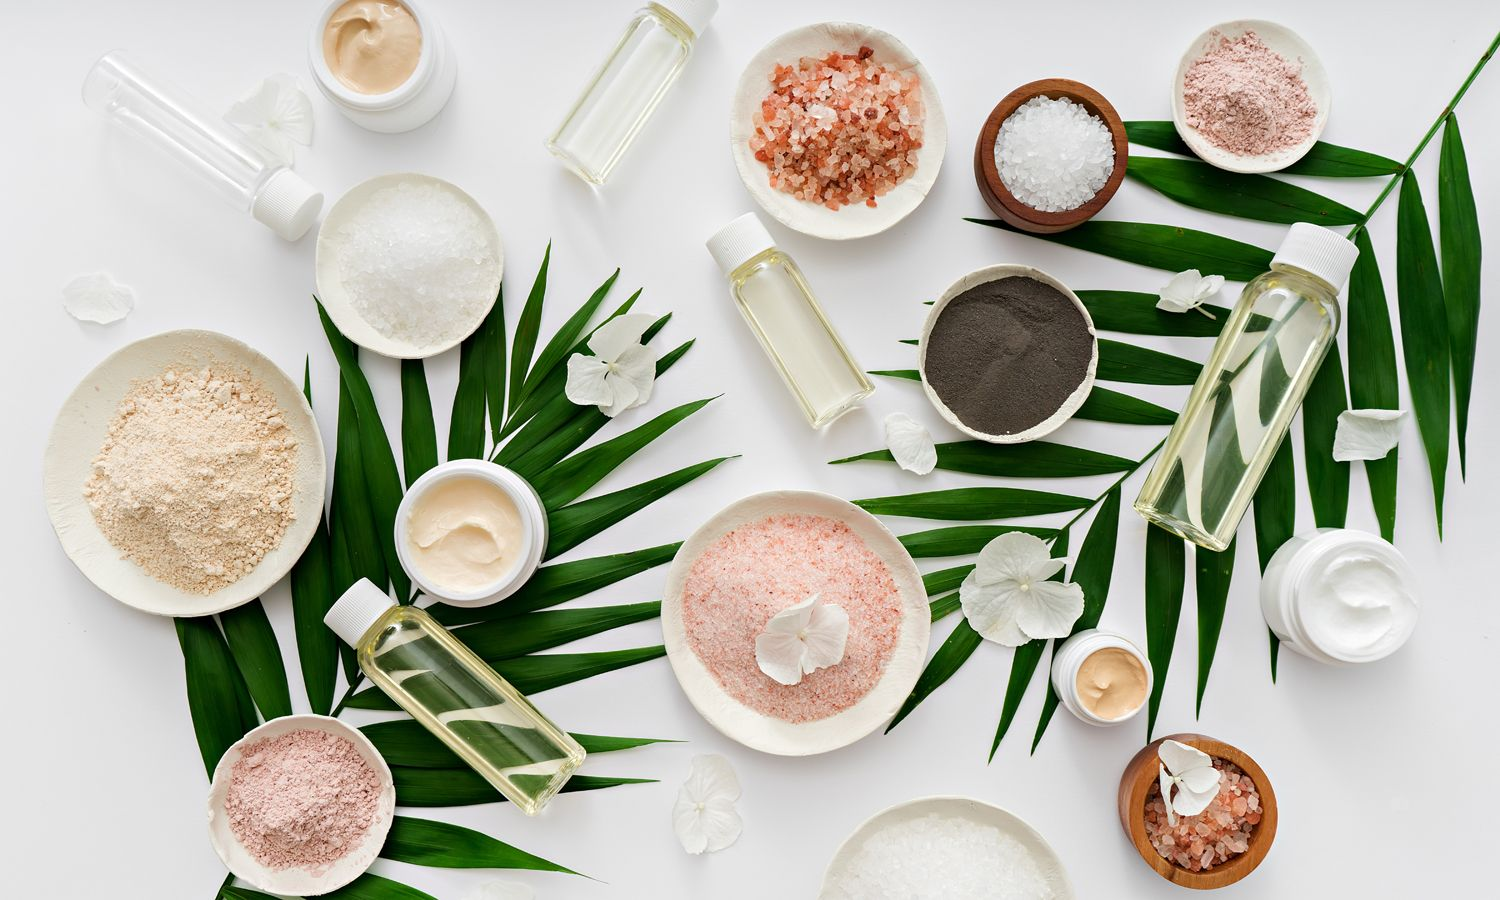 10 Great Natural Skincare Products To Try Out